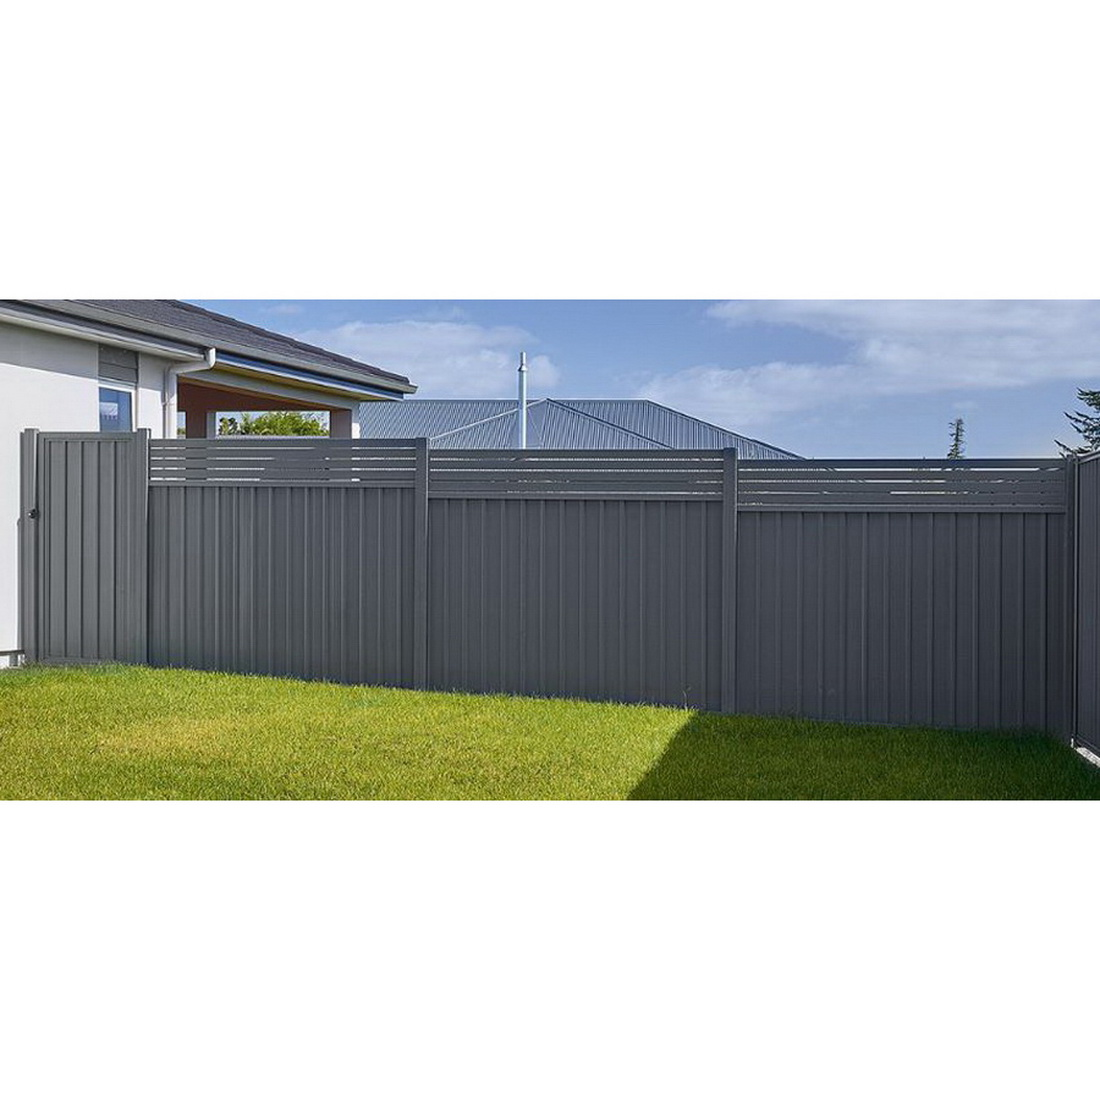 Frontier 1.5 Fence Panel 1500 x 2300mm Desertsand